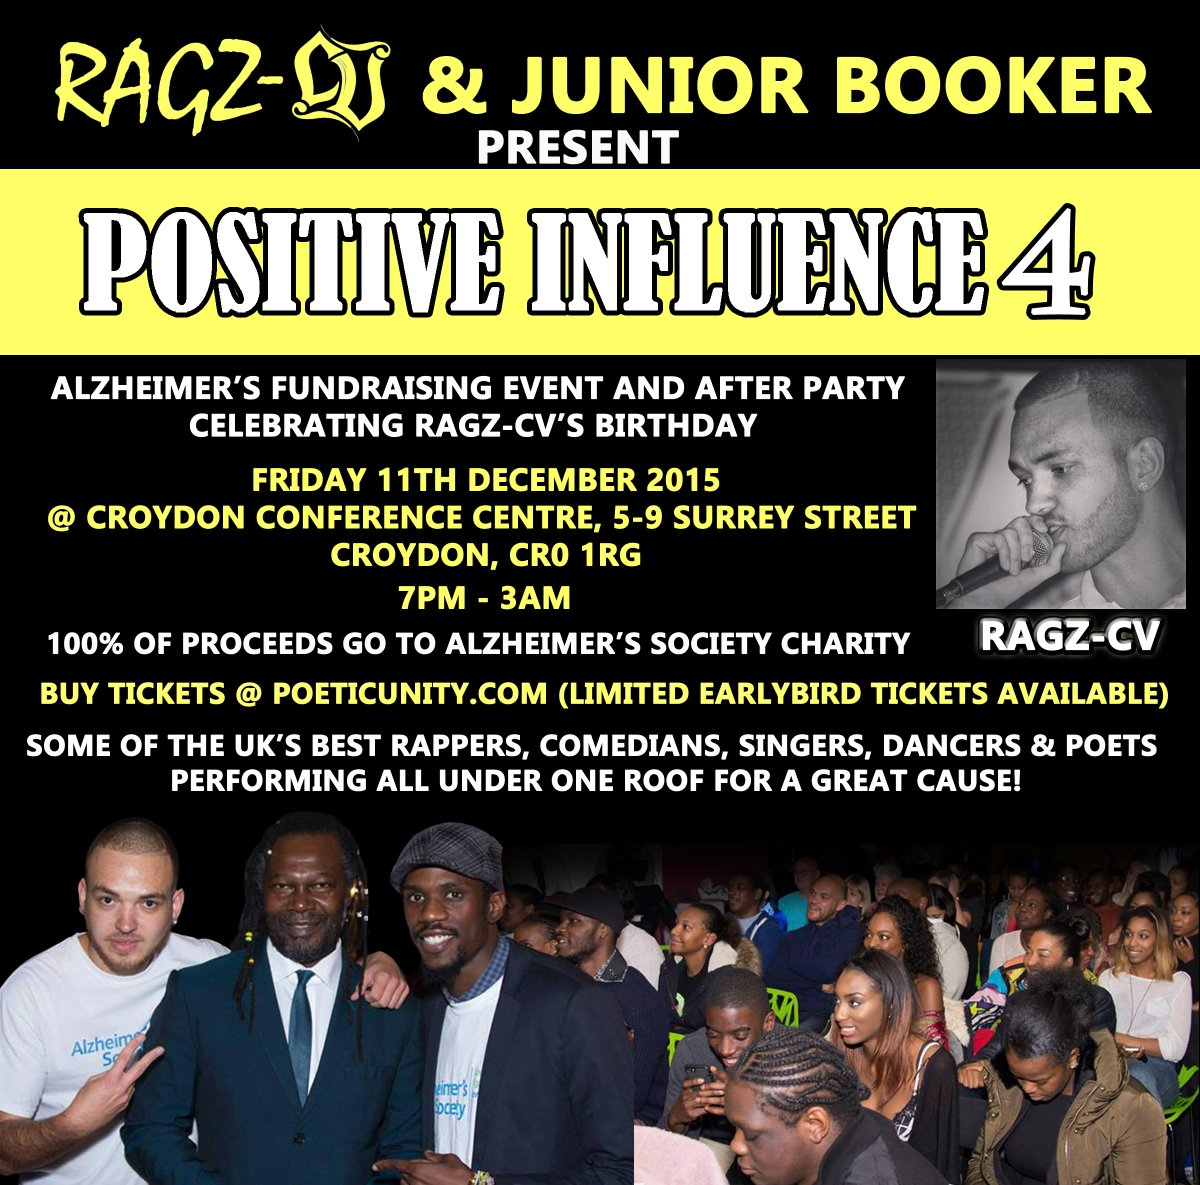 Have you got your tickets yet? @RagzCV @juniorbooker Positive Influence 4 in association with @alzheimerssoc https://t.co/MvD5vLr1PI